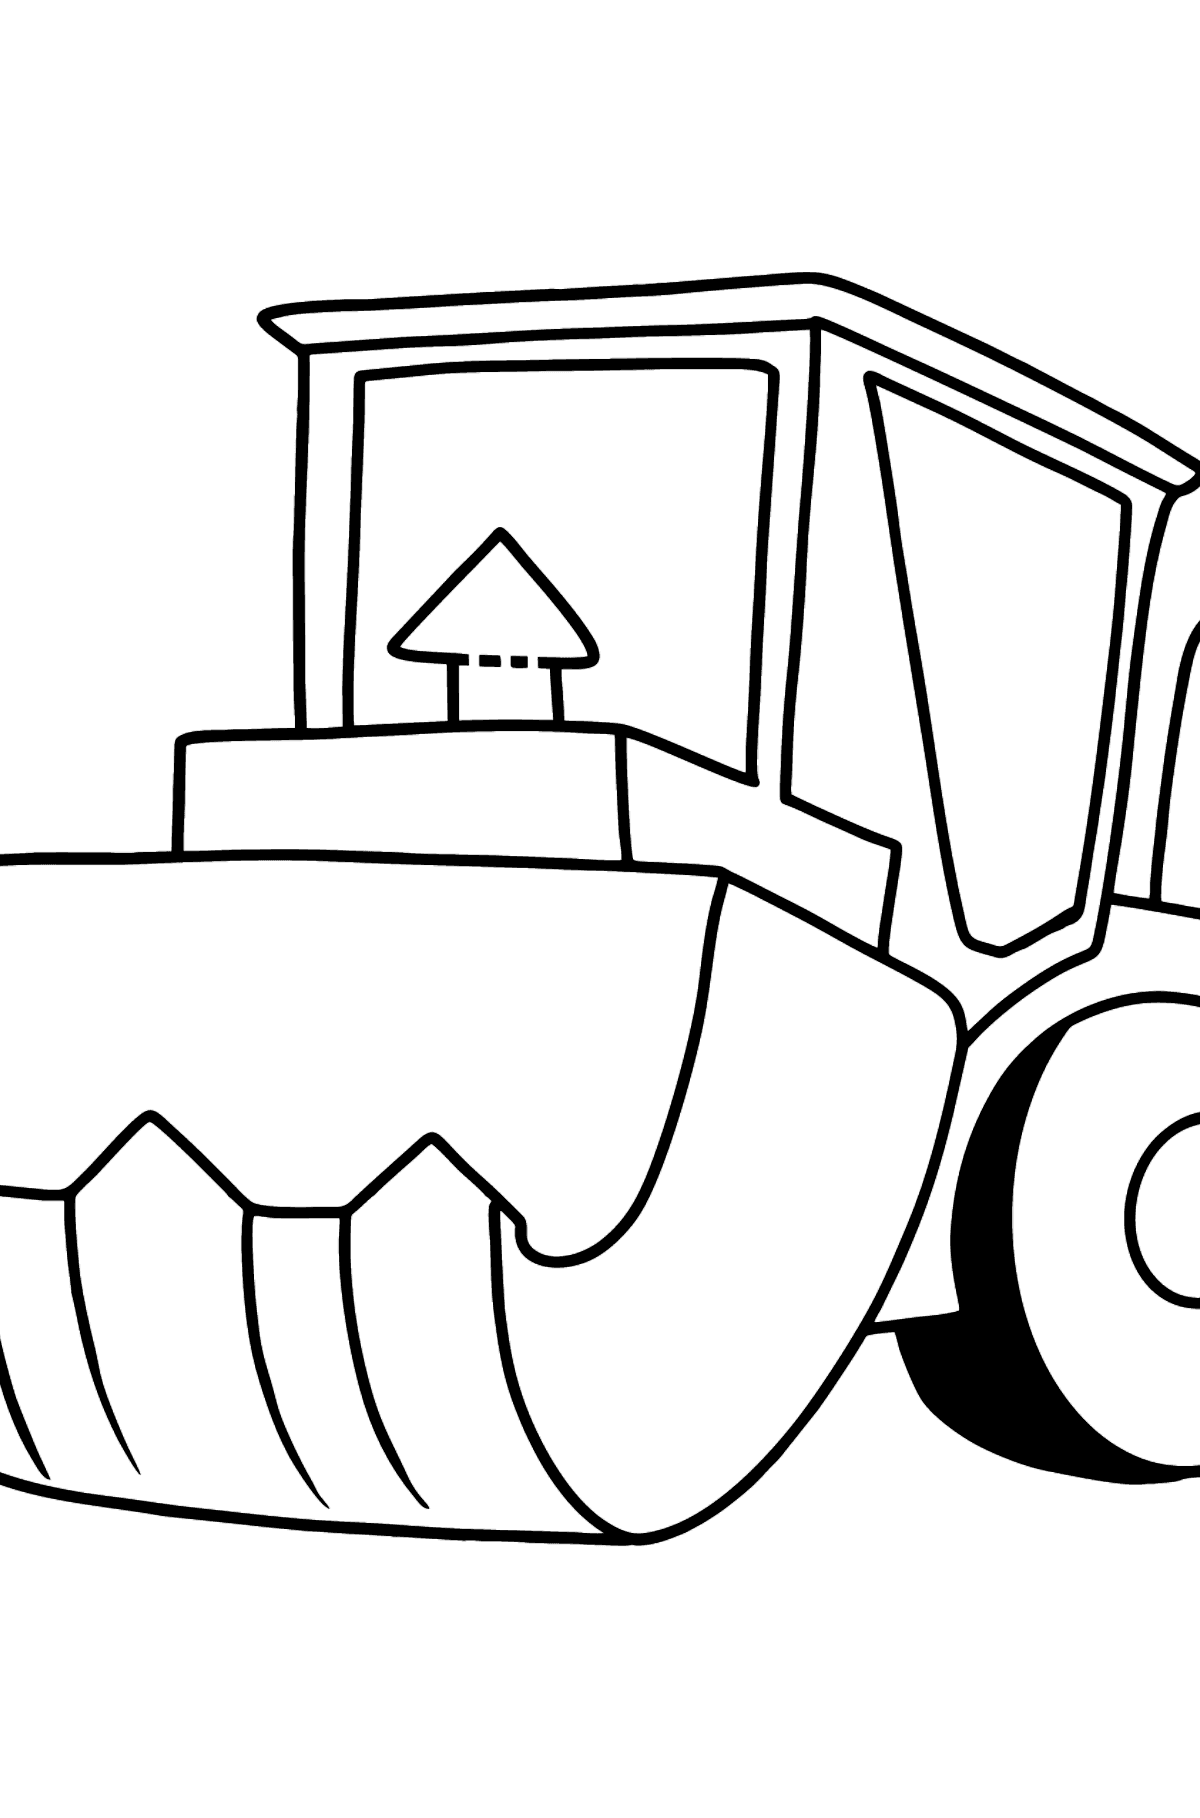 Tractor with Bag coloring page - Coloring Pages for Kids